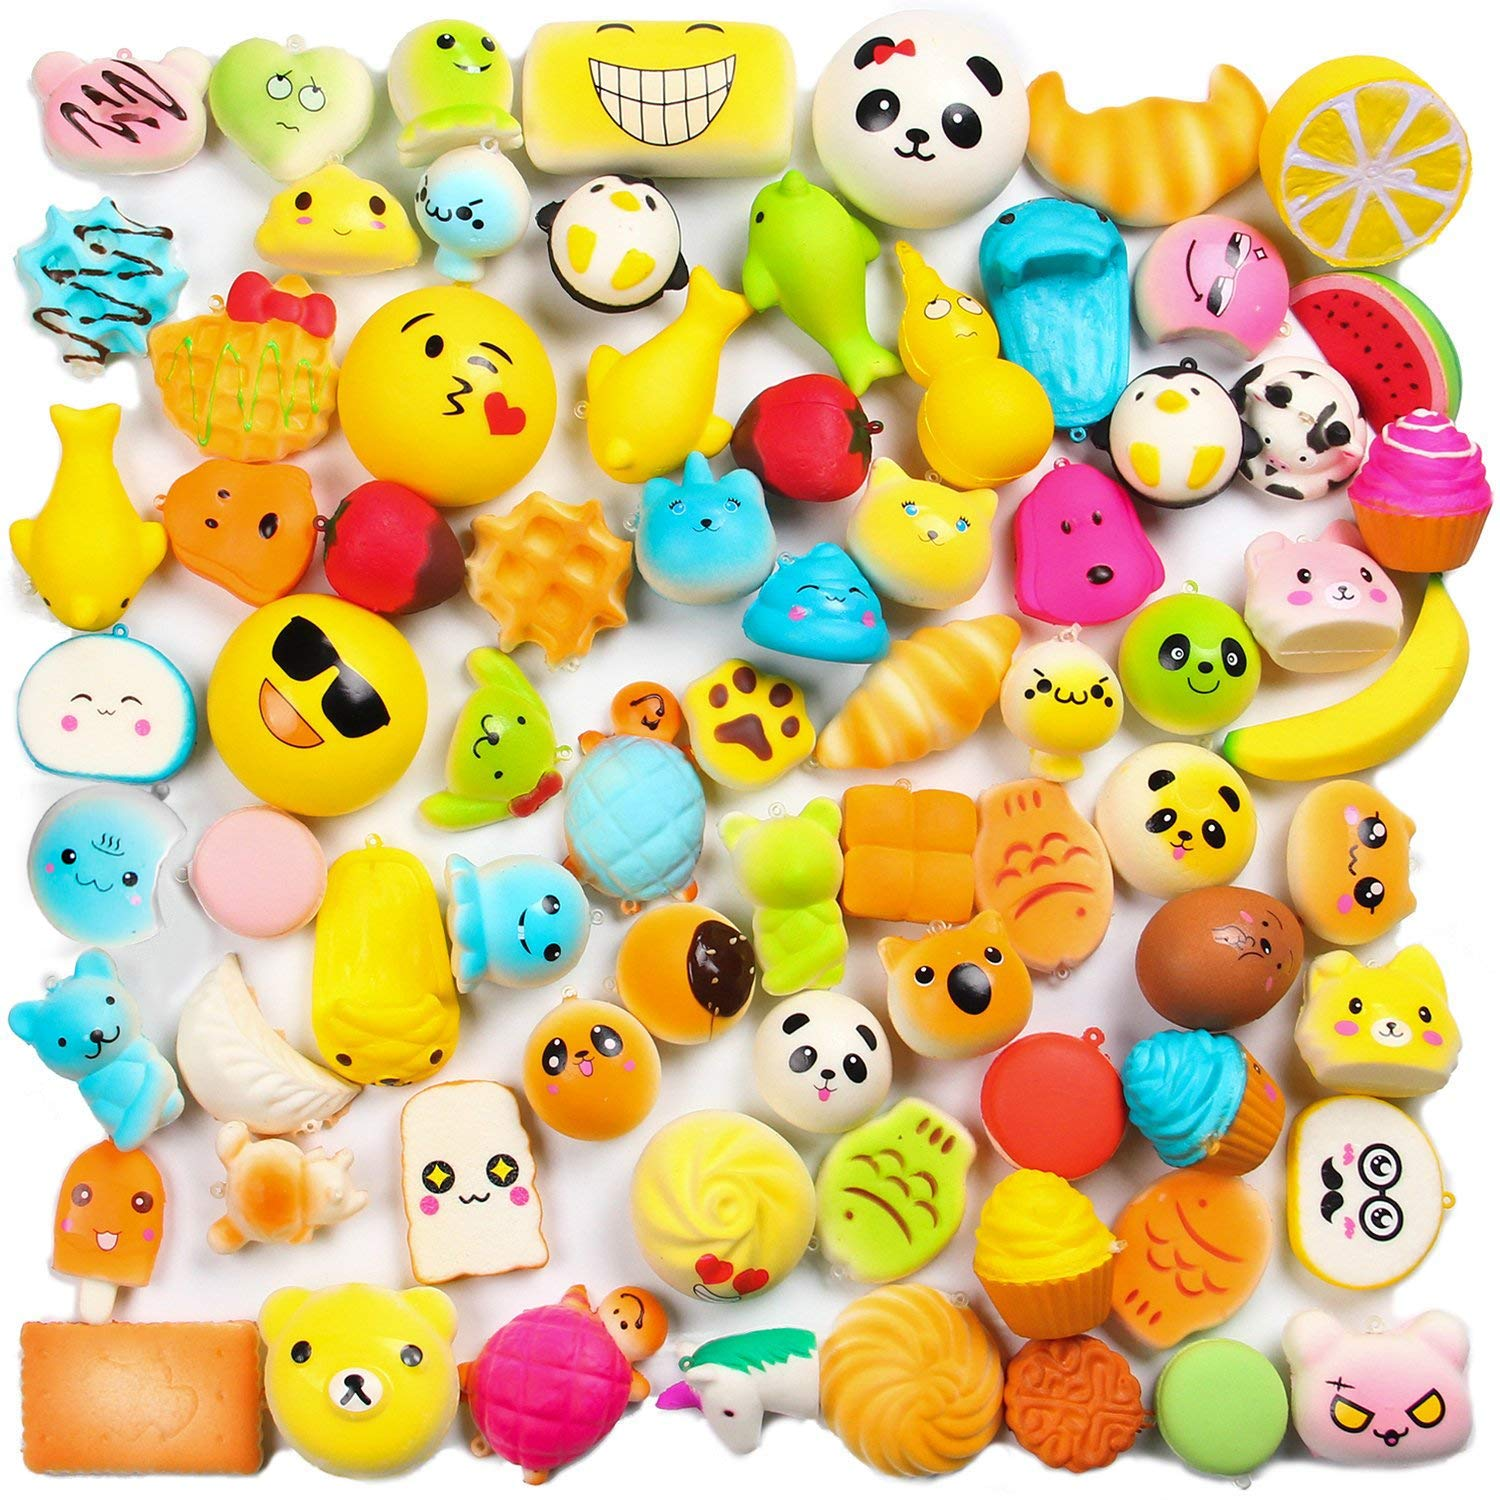 Random, Mini, Common Squishy! BLIND PACK of 1!